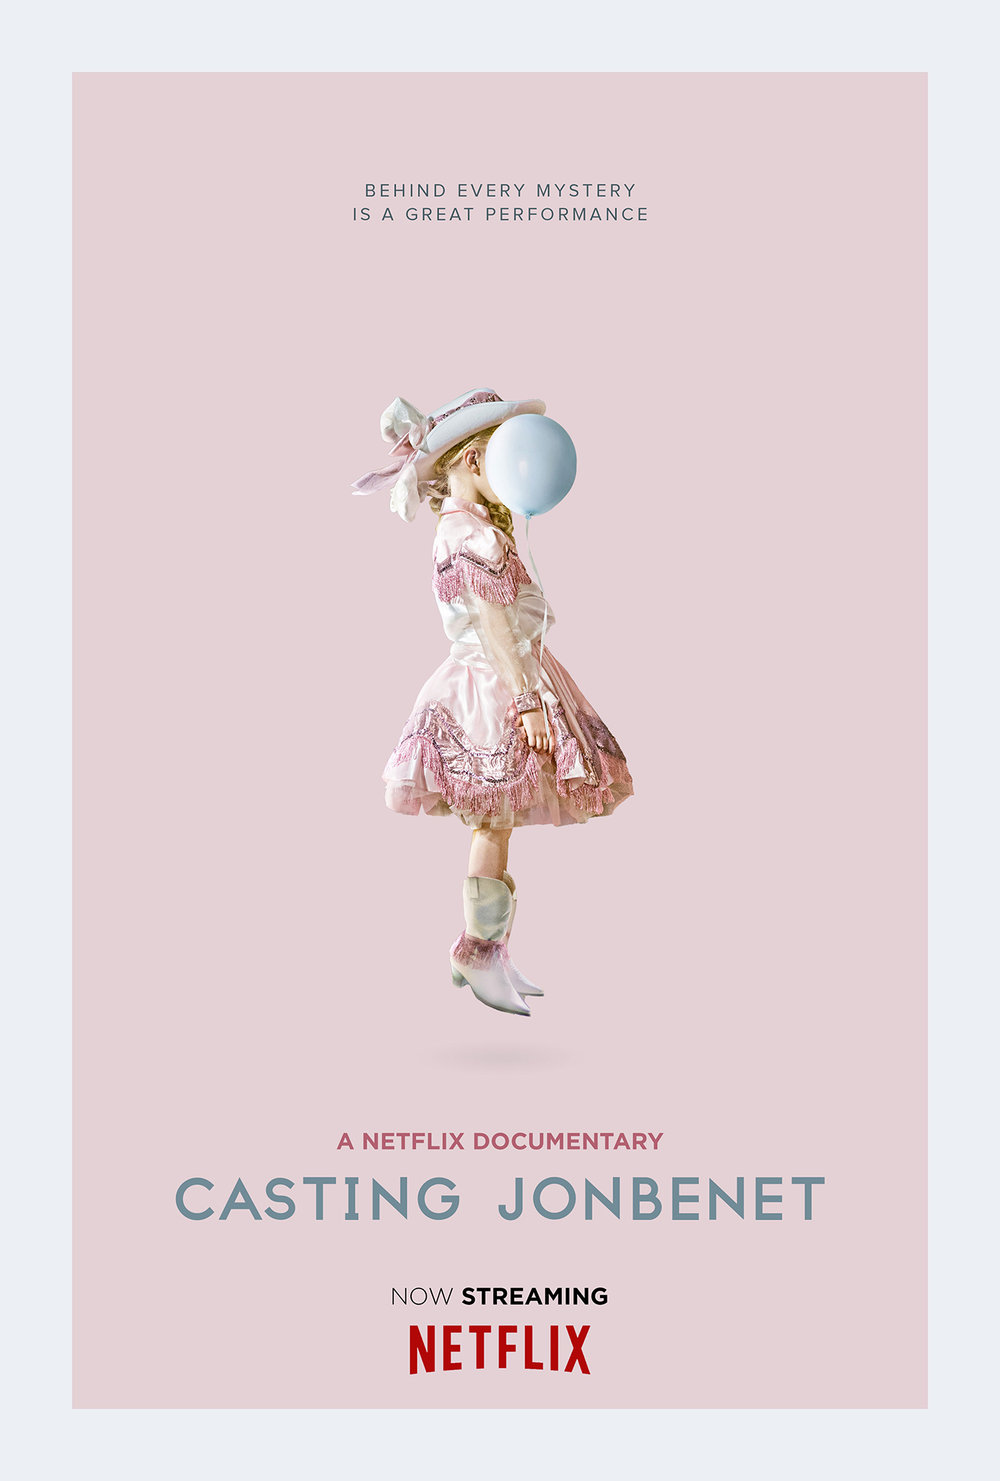 Casting JonBenet  - documents the casting process for a fictional film. Various Colorado-area actors are interviewed and tested for the roles of real people involved in the case, including John and Patsy Ramsey, Burke Ramsey, John Mark Karr, and Boulder police officials. During the process, the would-be actors reveal their emotions about the case and offer their own speculations.